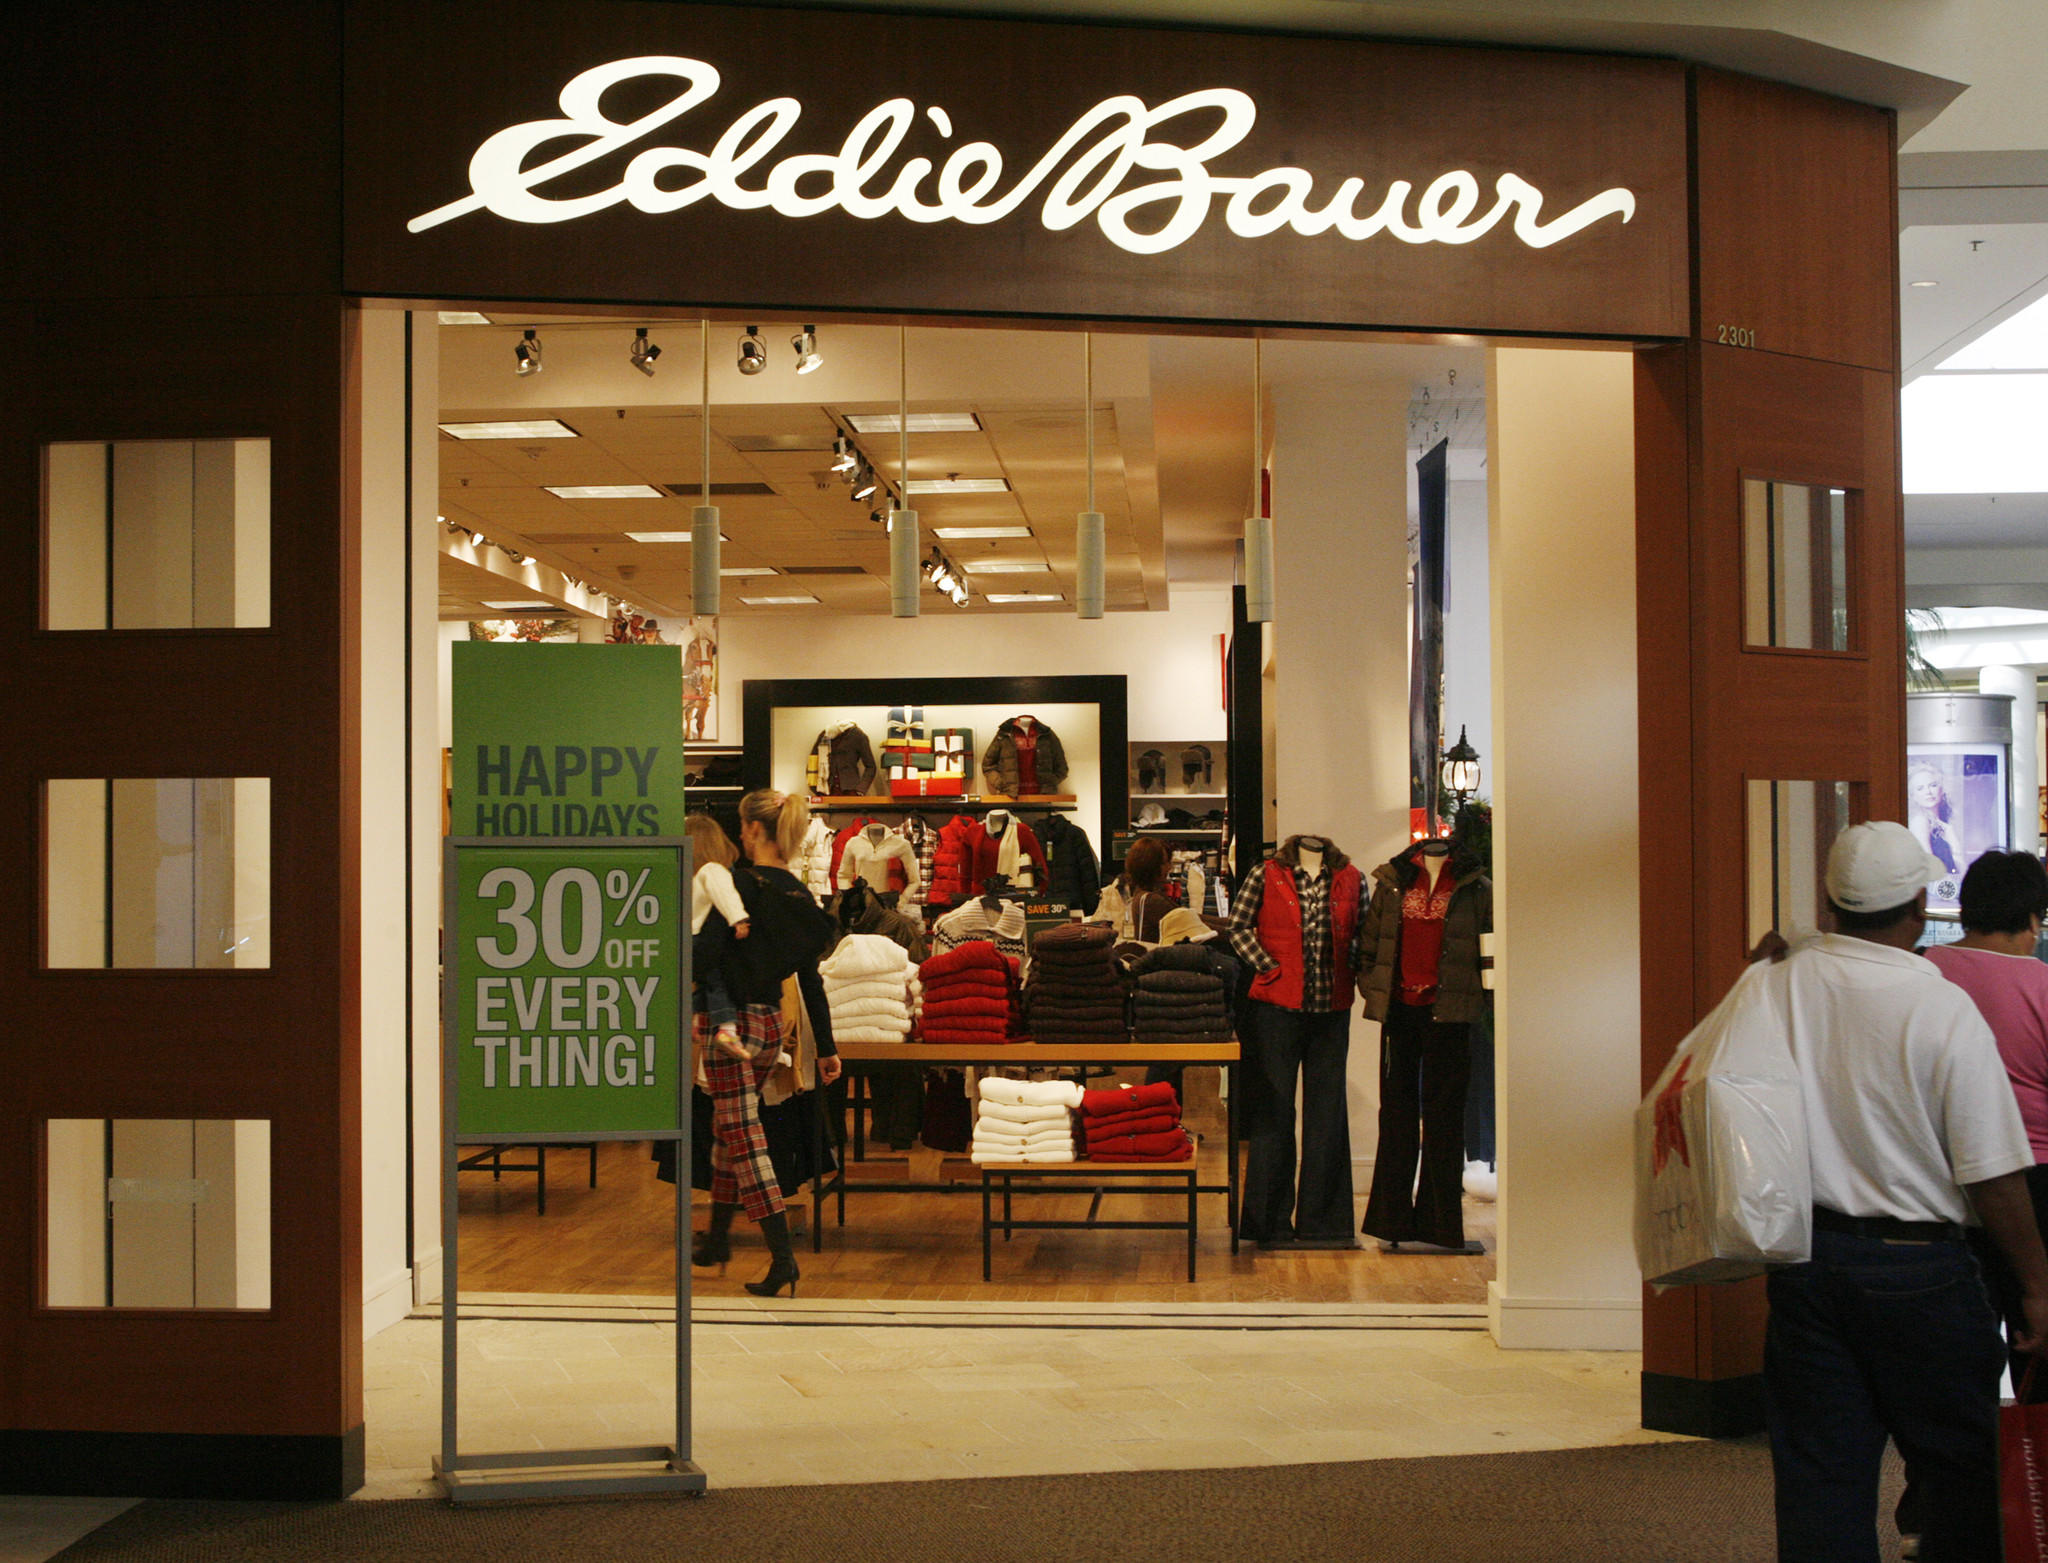 A shopper walks into an Eddie Bauer retail store at the Glendale Galleria shopping mall in Glendale, California in this November 28, 2008 file photo.